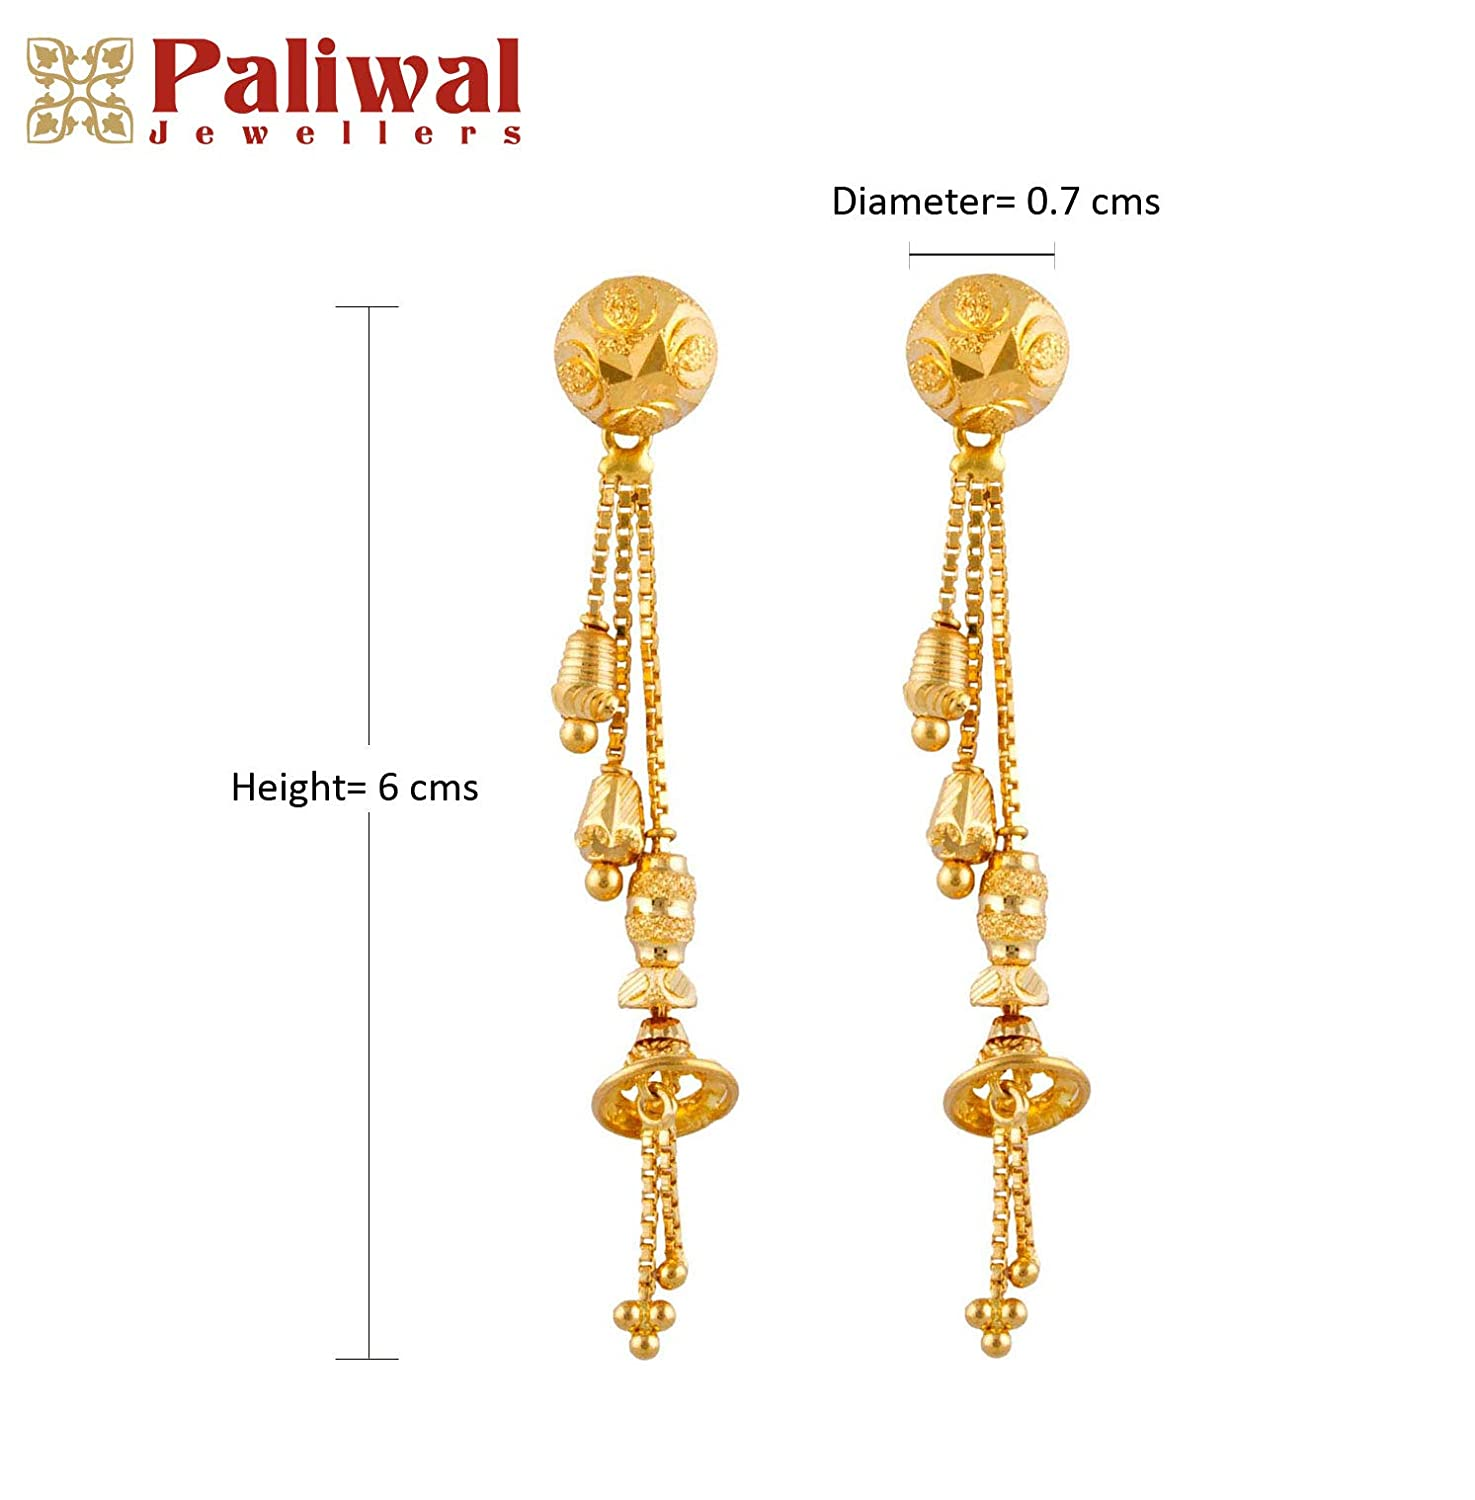 20744a741 Buy Paliwal Jewellers 22 KT Yellow Gold Sui Dhaga Earring For Women and  Girls Online at Low Prices in India   Amazon Jewellery Store - Amazon.in